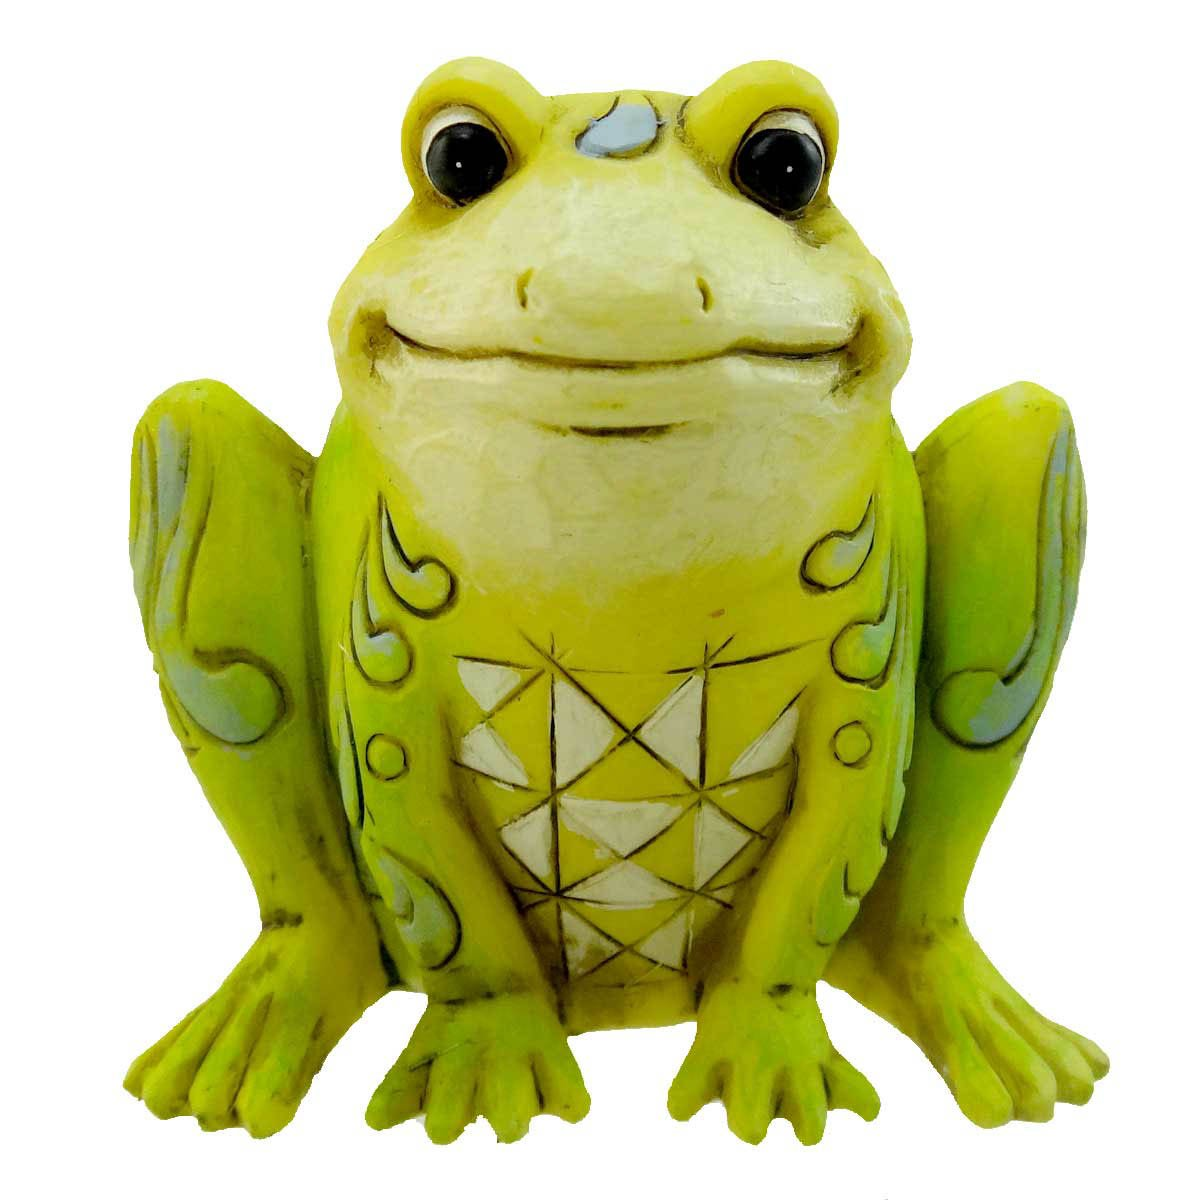 Decorative Frog Figurines for Home Decor Ideas